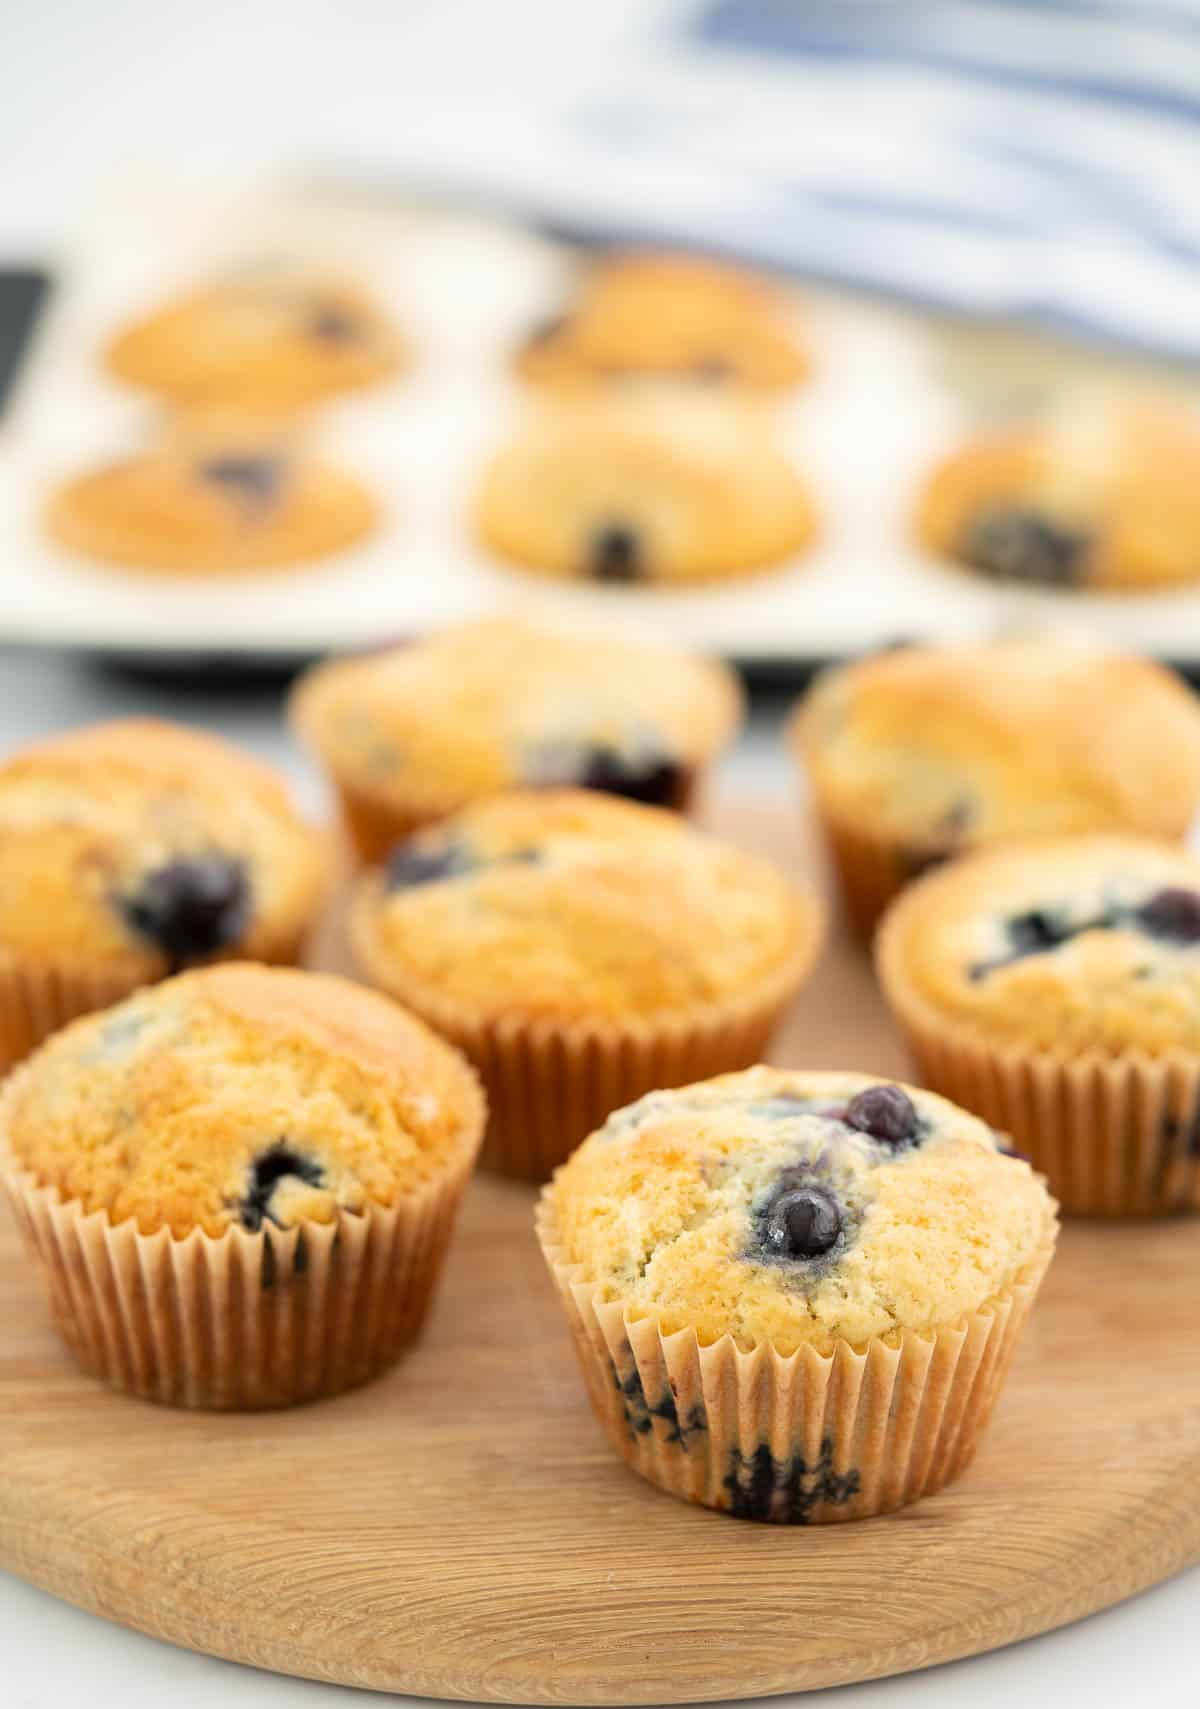 Blueberry studded muffins sitting on a circular wooden board.